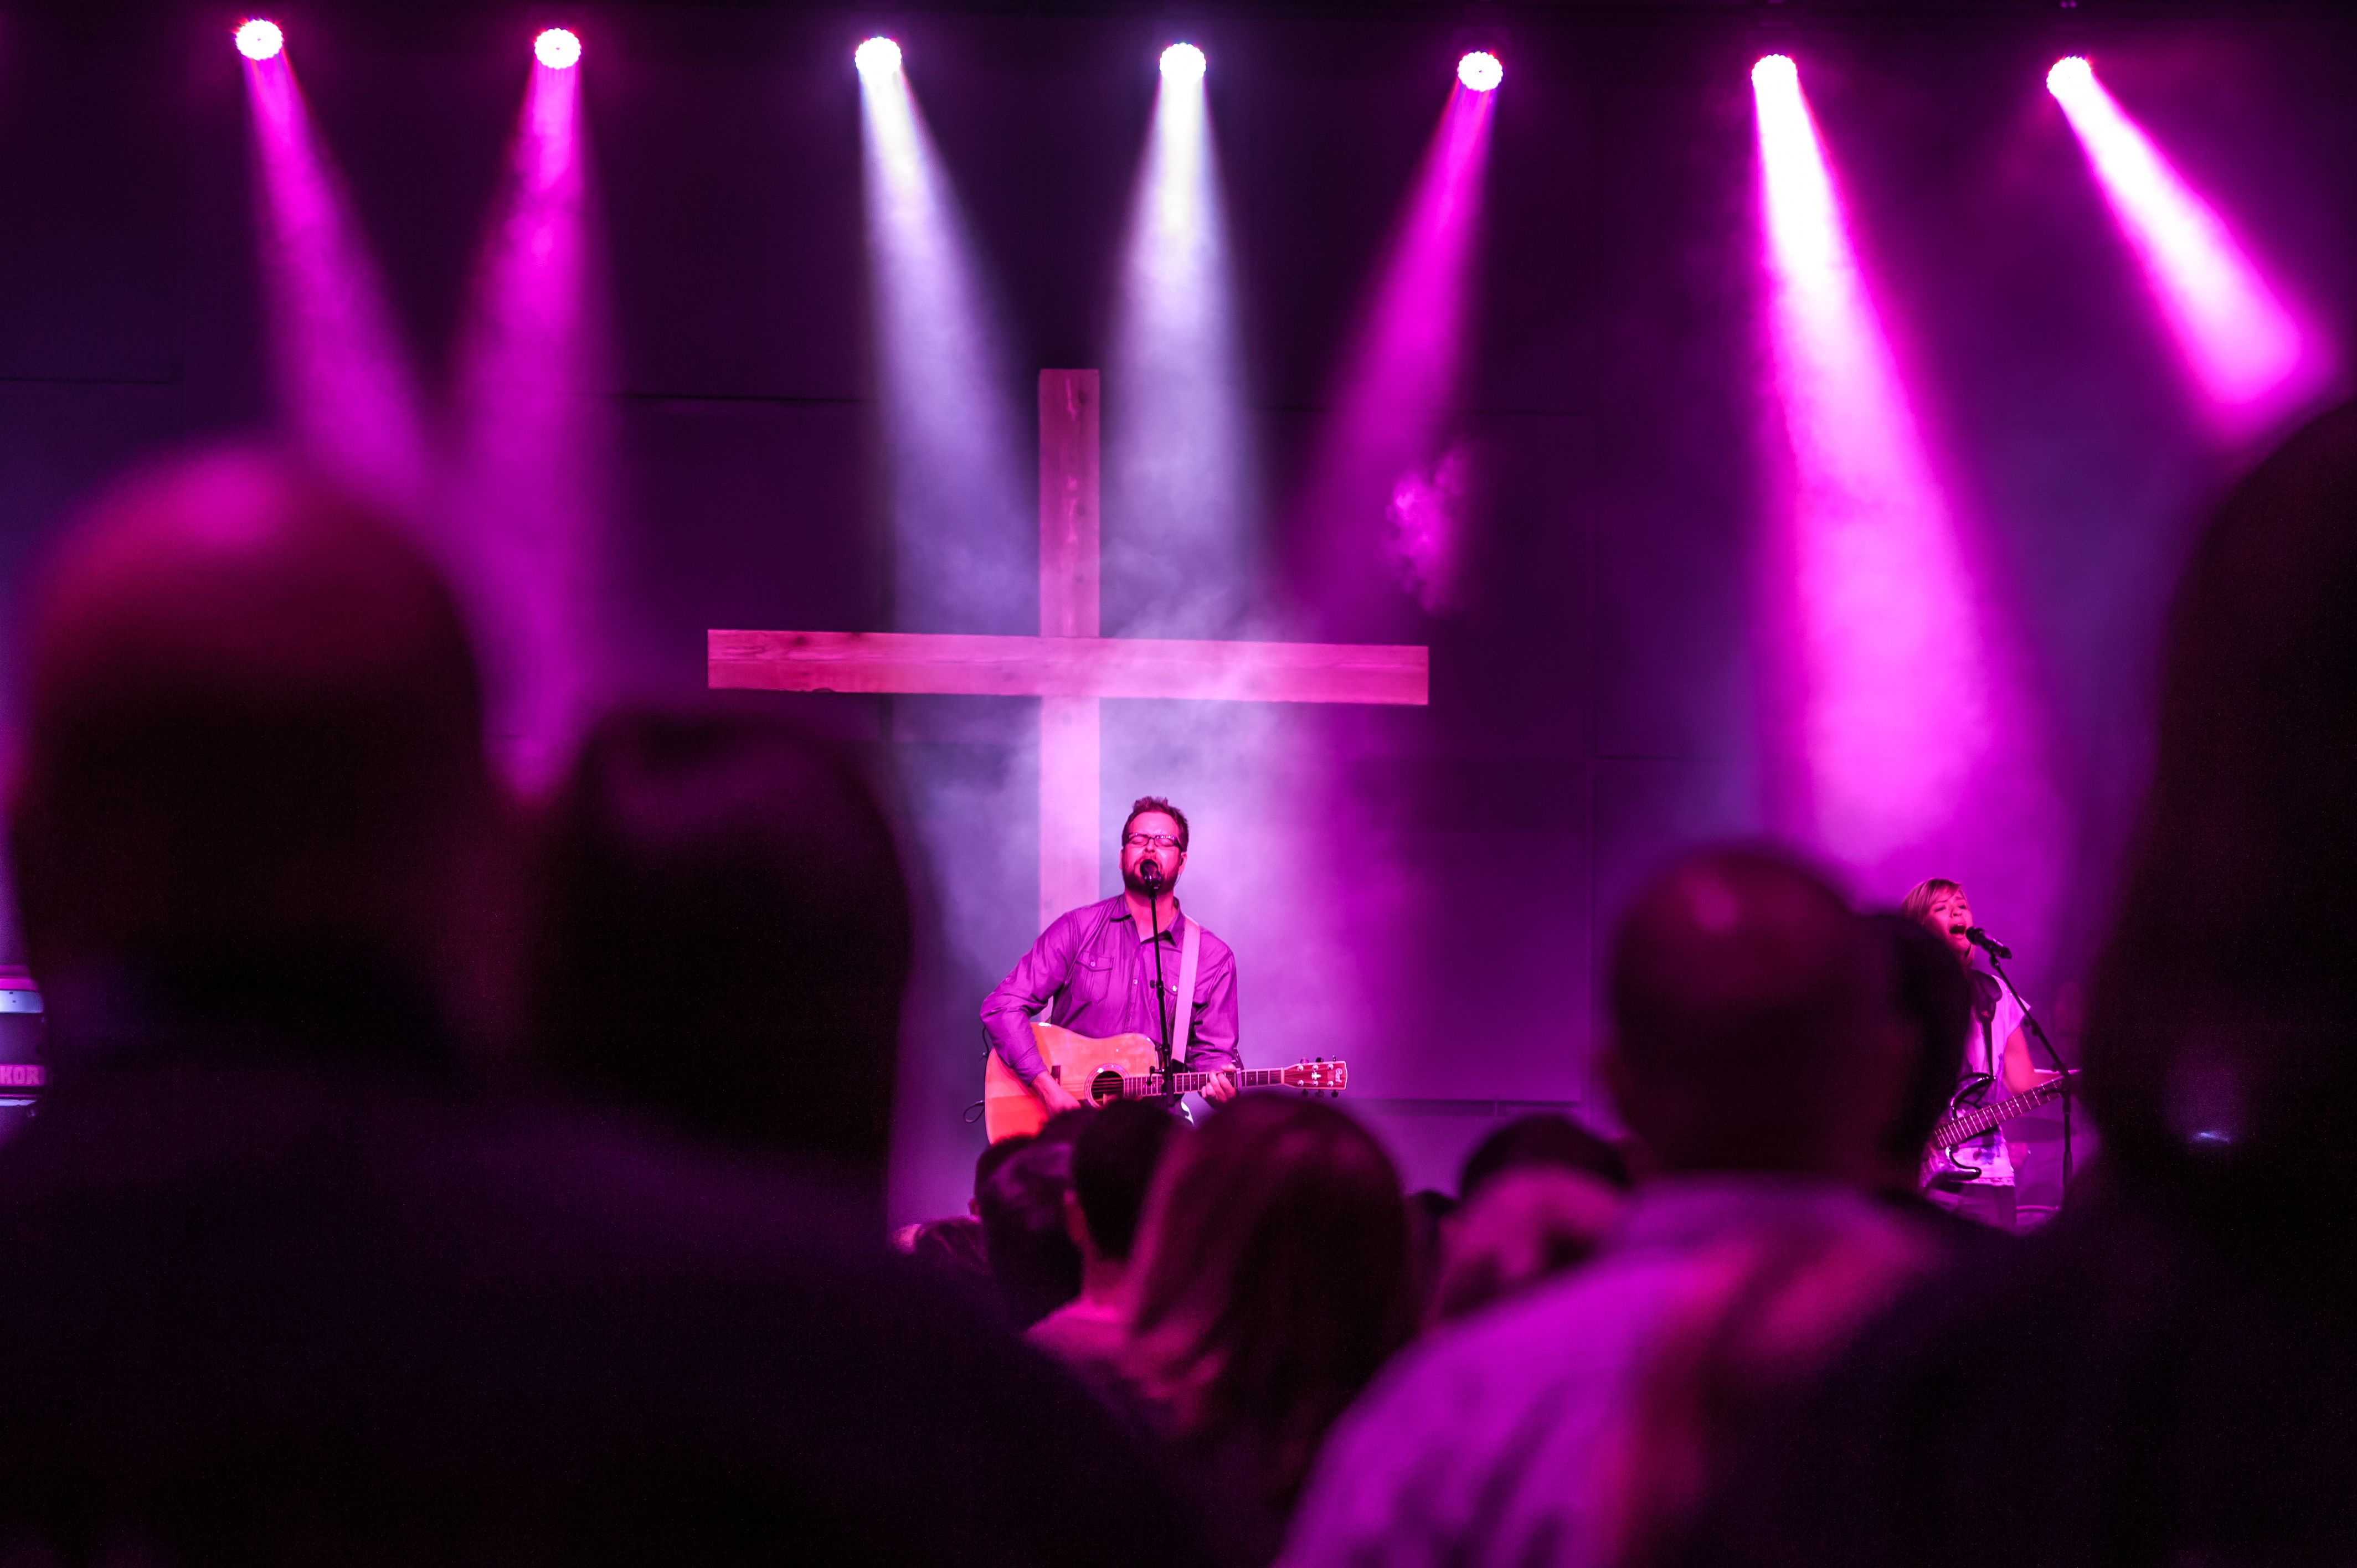 At the Cross Martin Mac 101 lighting up house of worship at Solace Church #IntegrityLighting & At the Cross Martin Mac 101 lighting up house of worship at Solace ...